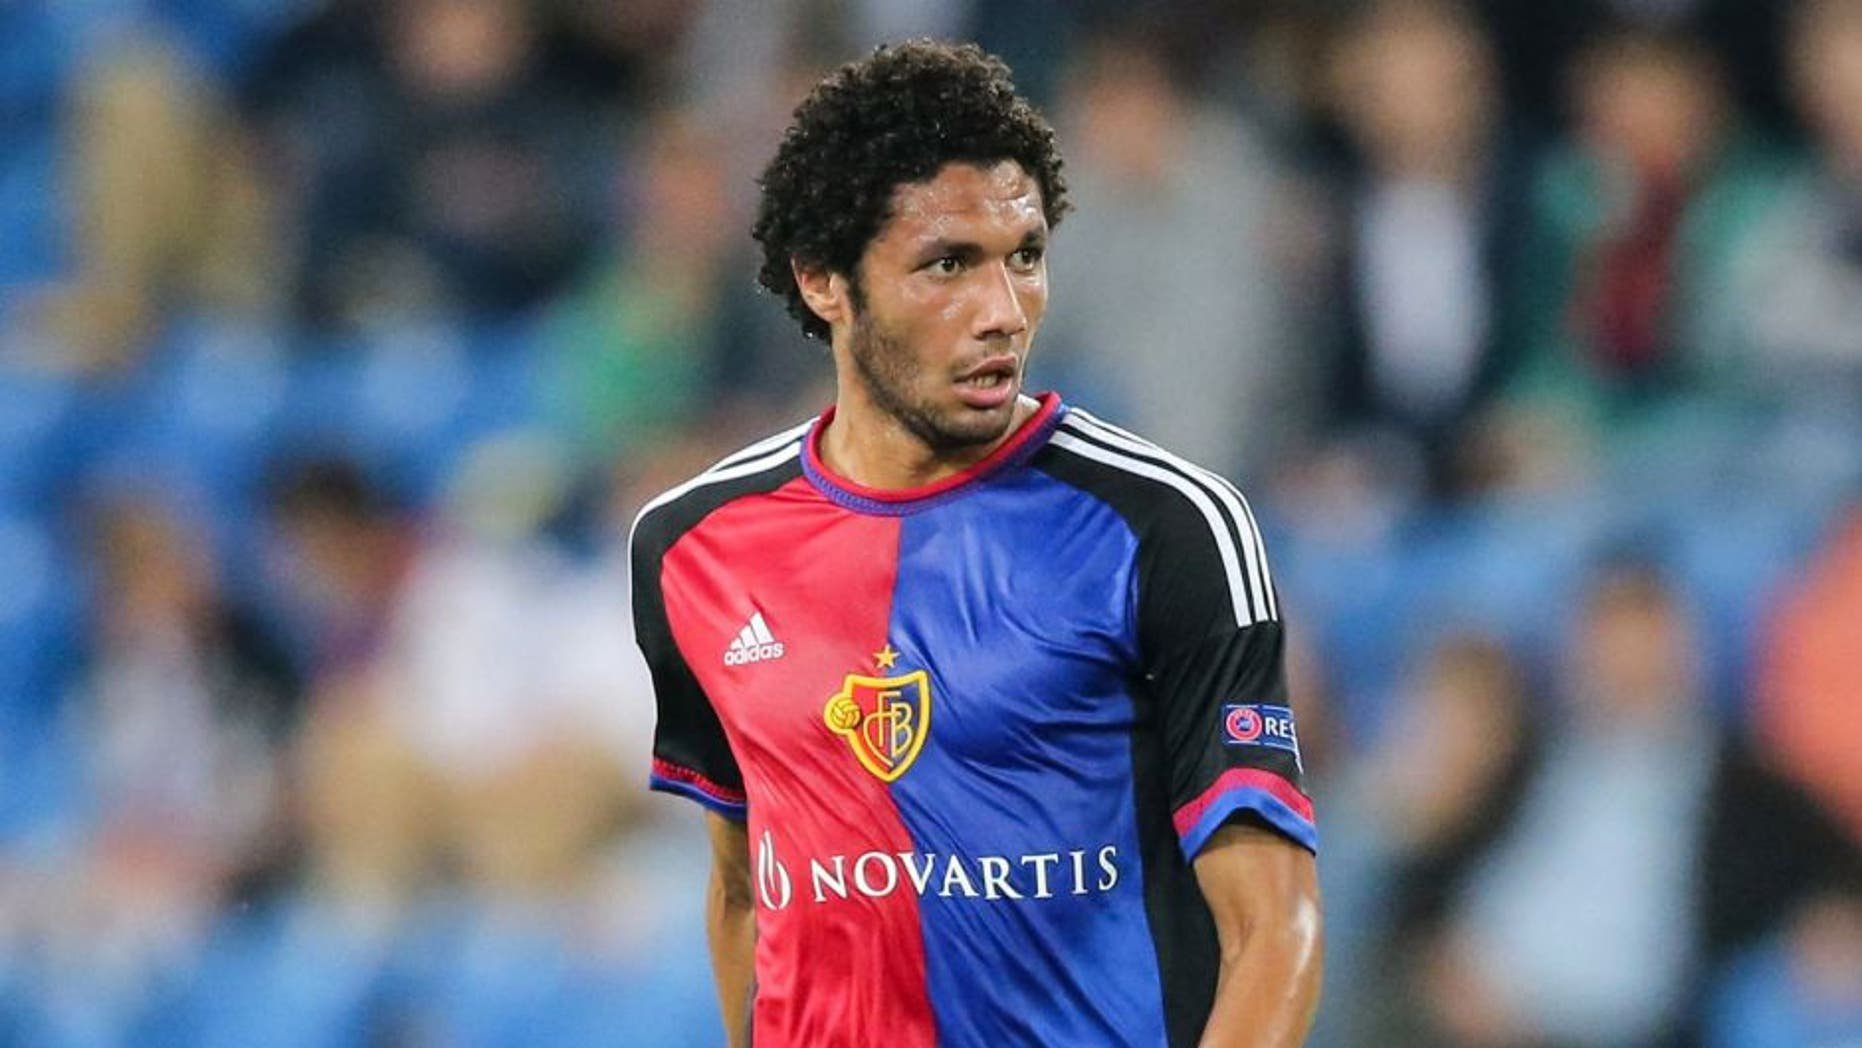 BASEL, SWITZERLAND - AUGUST 19: Mohamed Elneny of Basel controls the ball during the UEFA Champions League qualifying round play off first leg match between FC Basel and Maccabi Tel Aviv at St. Jakob-Park on August 19, 2015 in Basel, Switzerland. (Photo by Simon Hofmann/Getty Images)